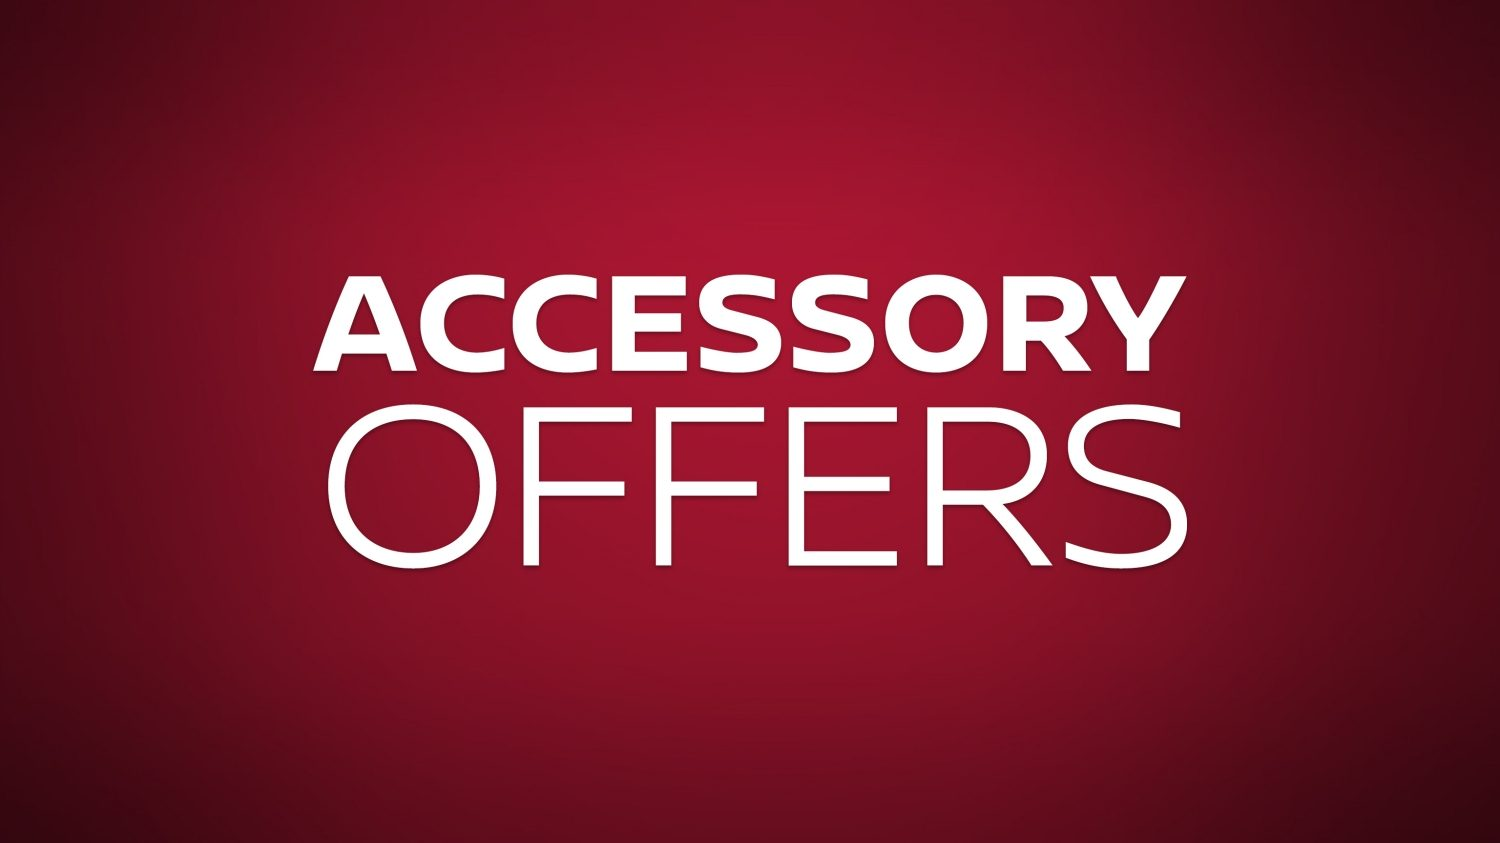 Accessory Offers